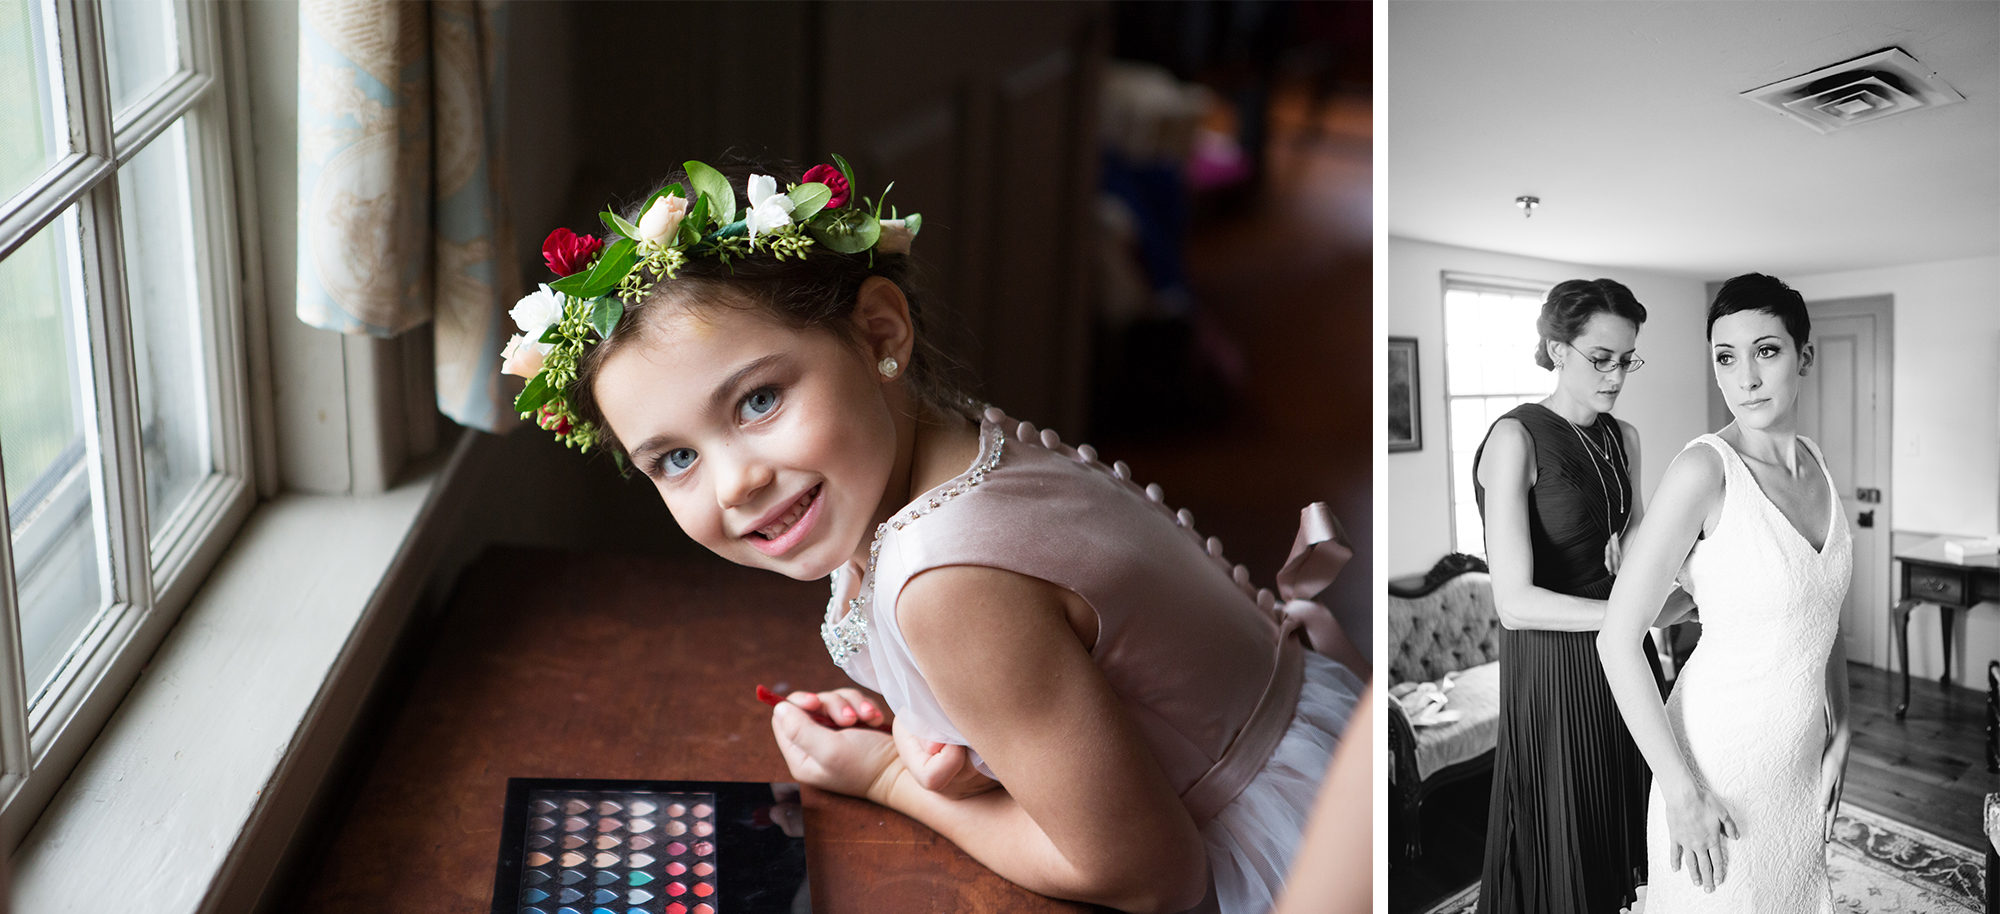 Flower Girl Bride Prep Wedding Massachusetts Zsuzsi Pal Photography Destination